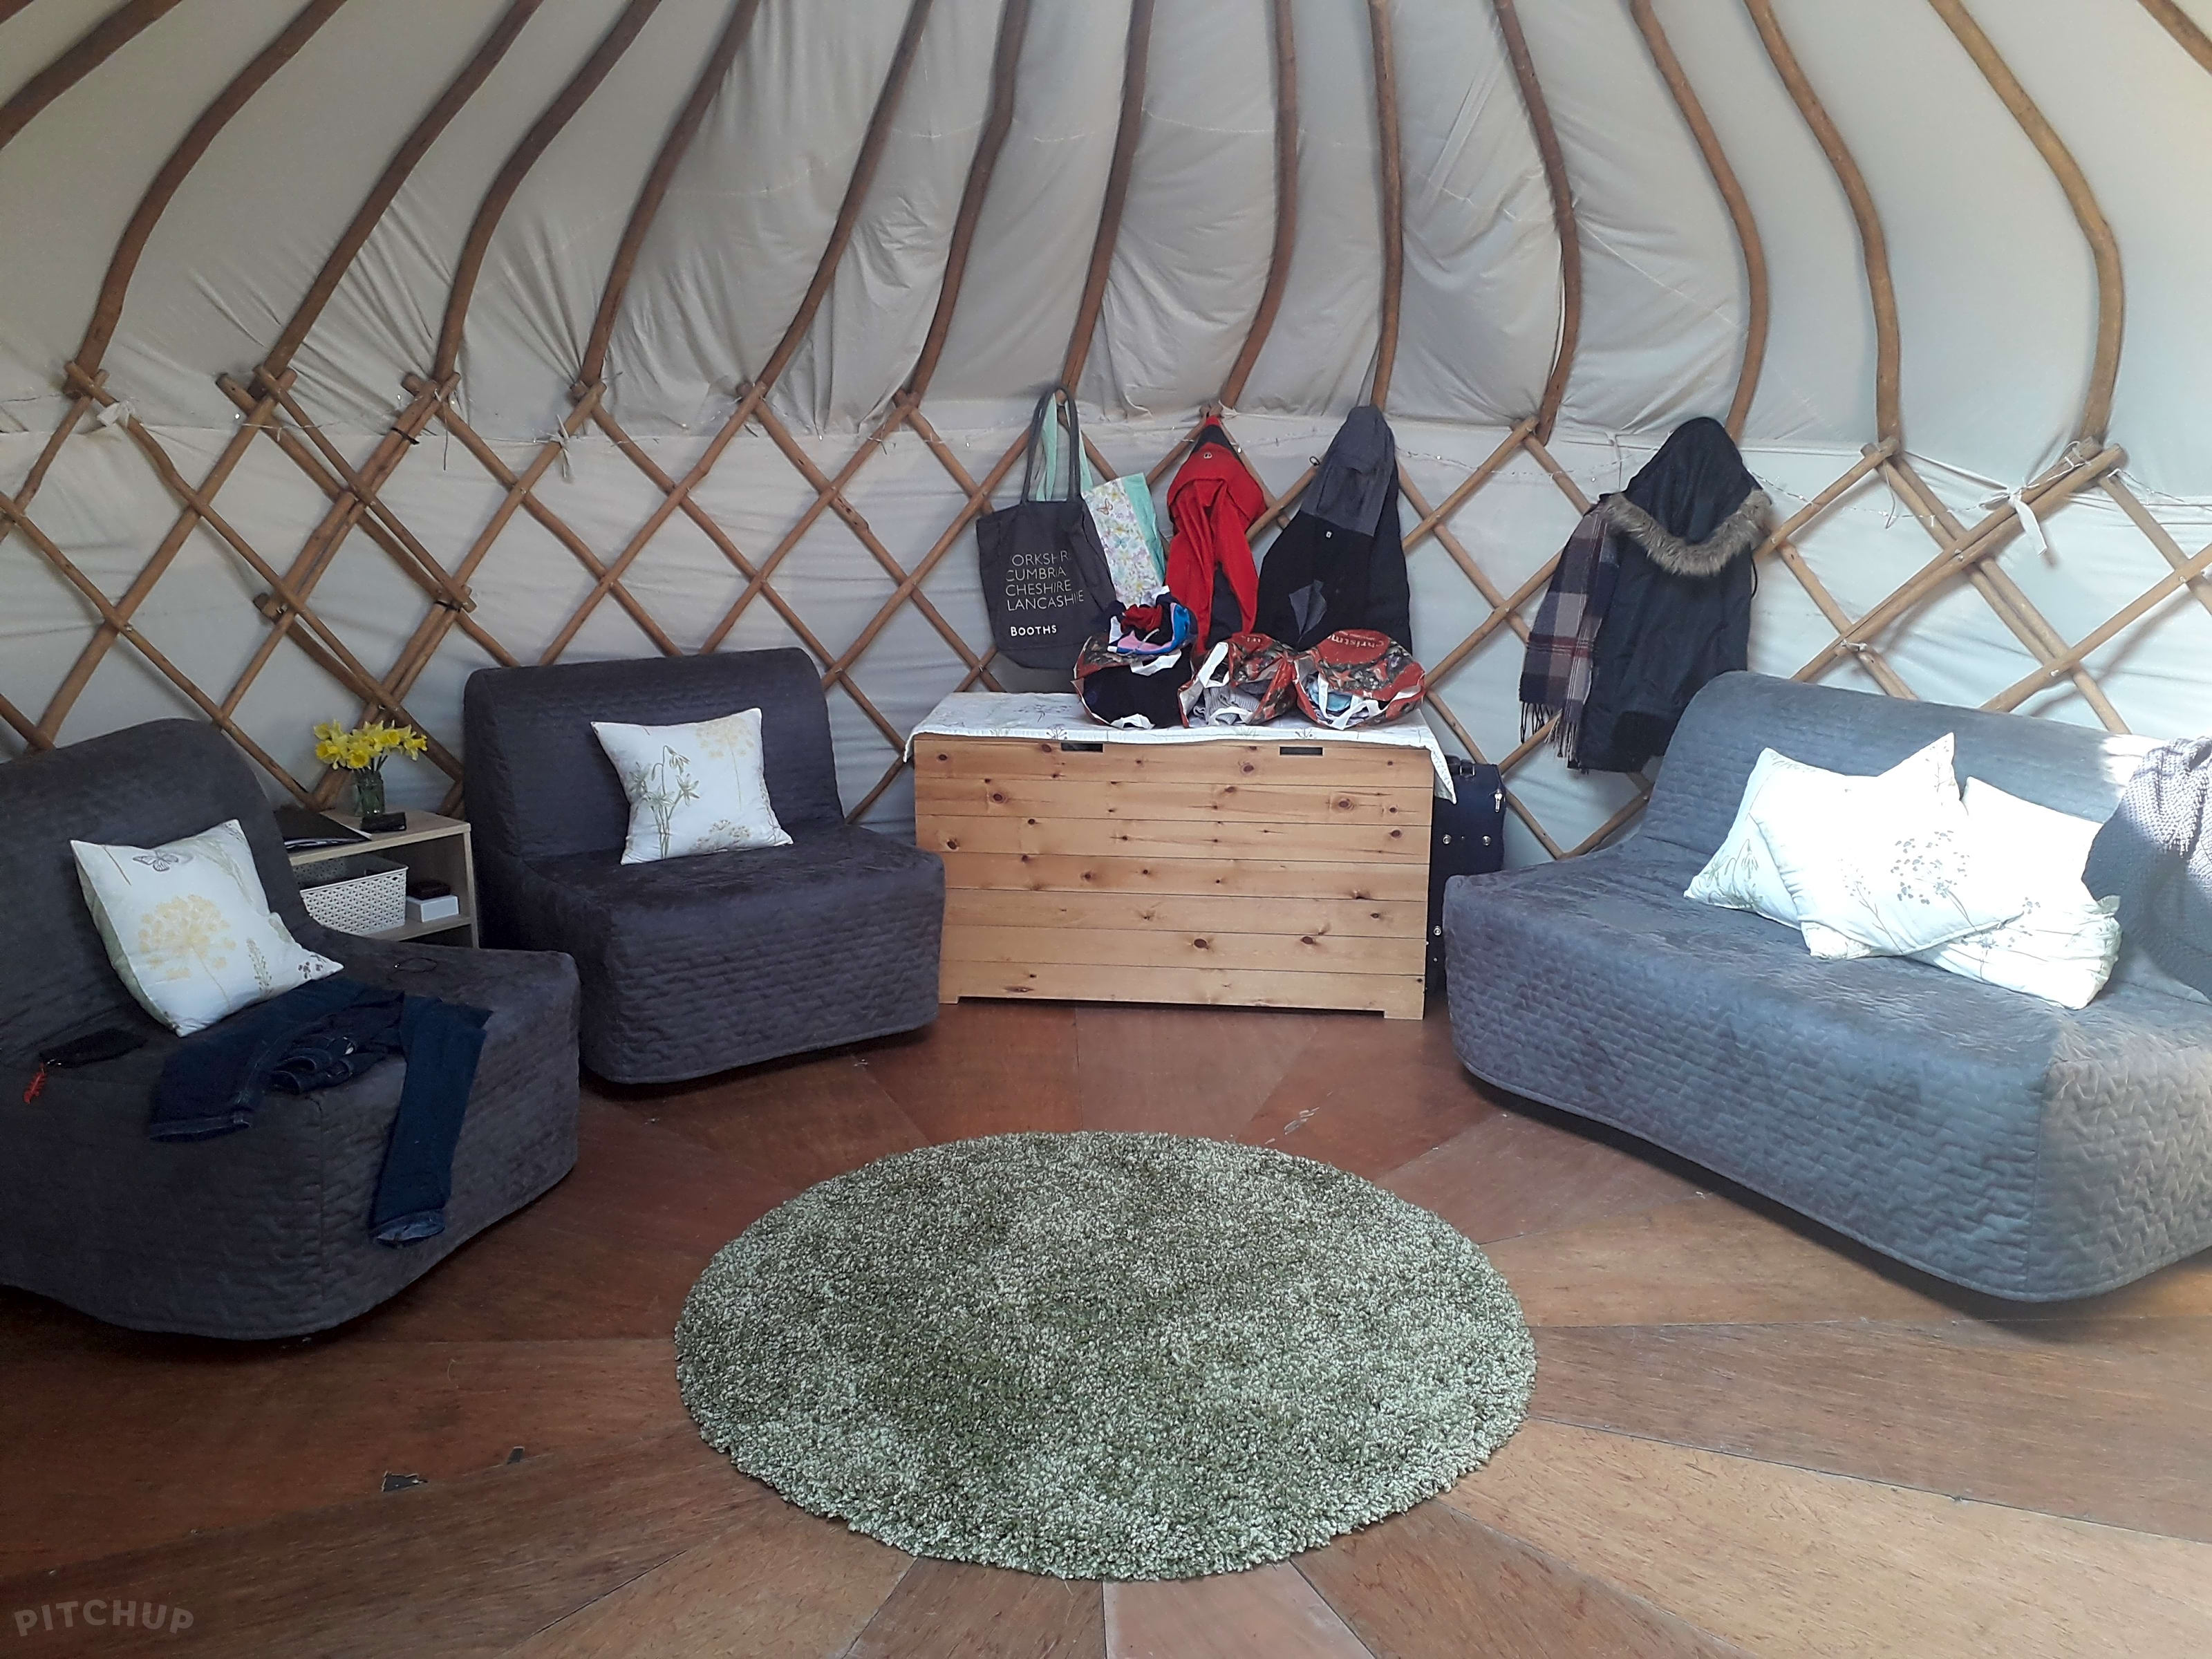 Lakes Yurts, Cockermouth - Updated 2019 prices - Pitchup®